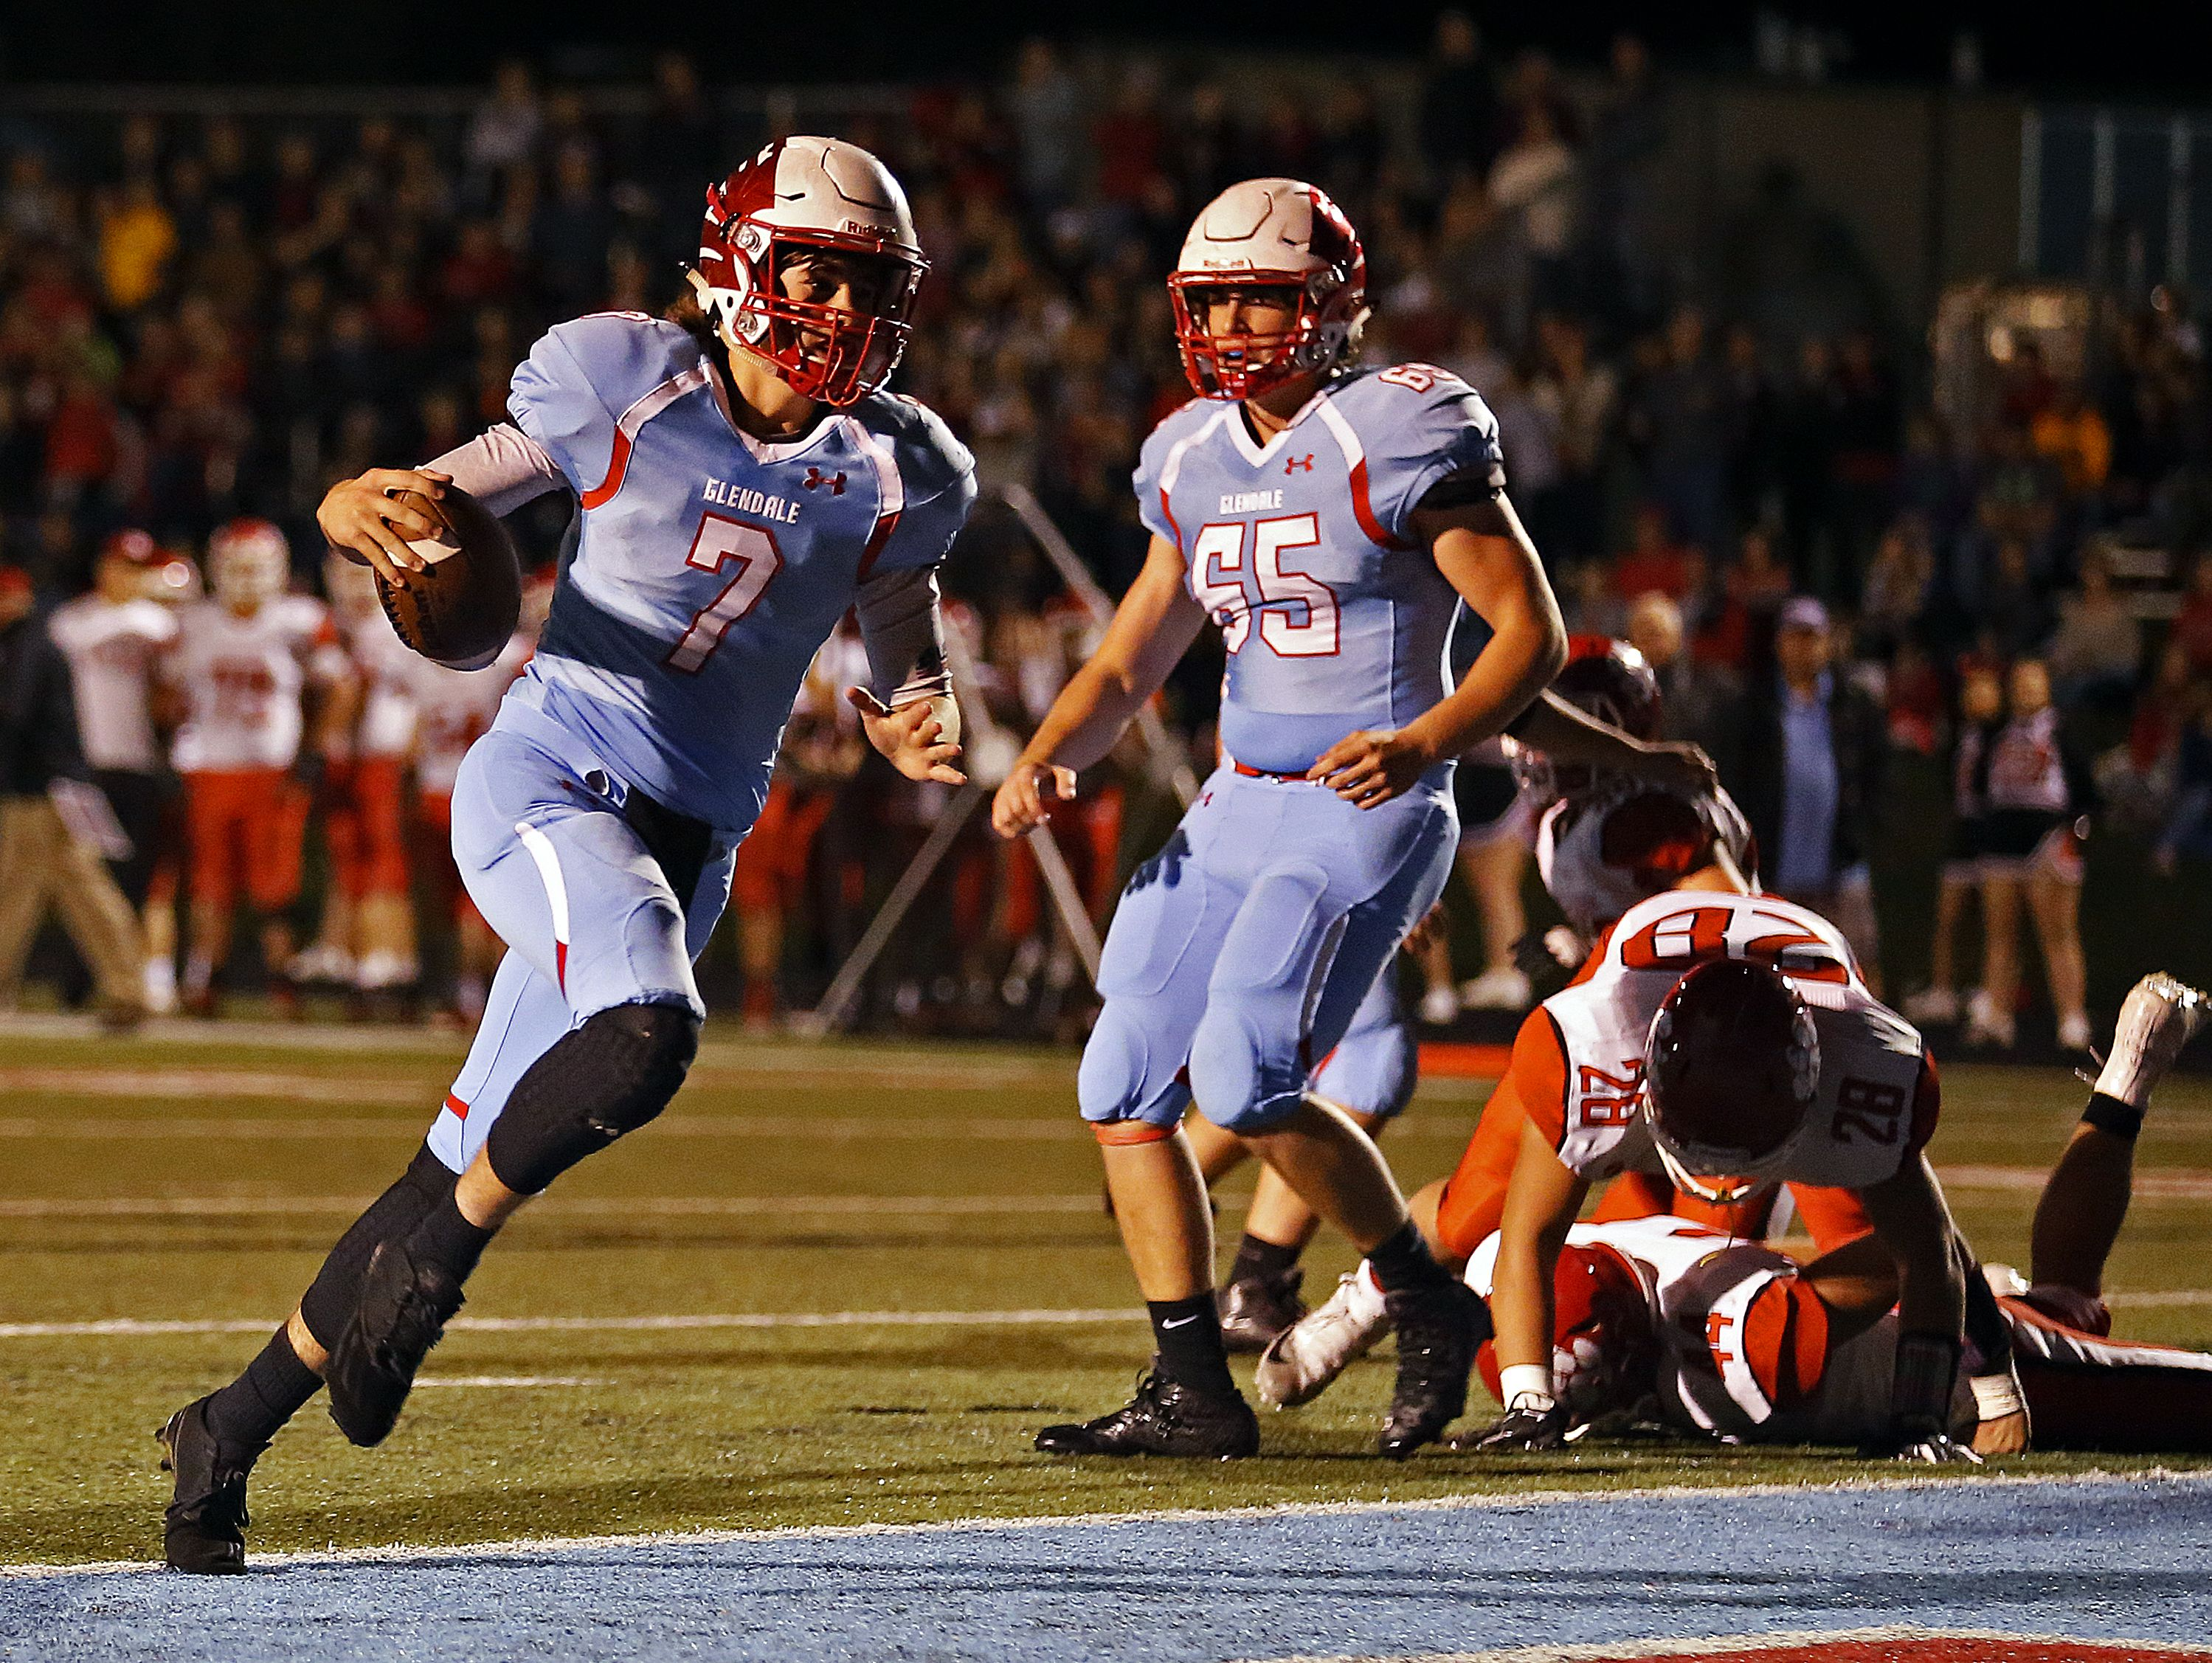 Glendale High School quarterback Alex Huston (7) walks into the end zone to score on a two-point conversion during first quarter action of the playoff game between Glendale High School and Ozark High School at Lowe Stadium in Springfield, Mo. on Nov. 4, 2016.